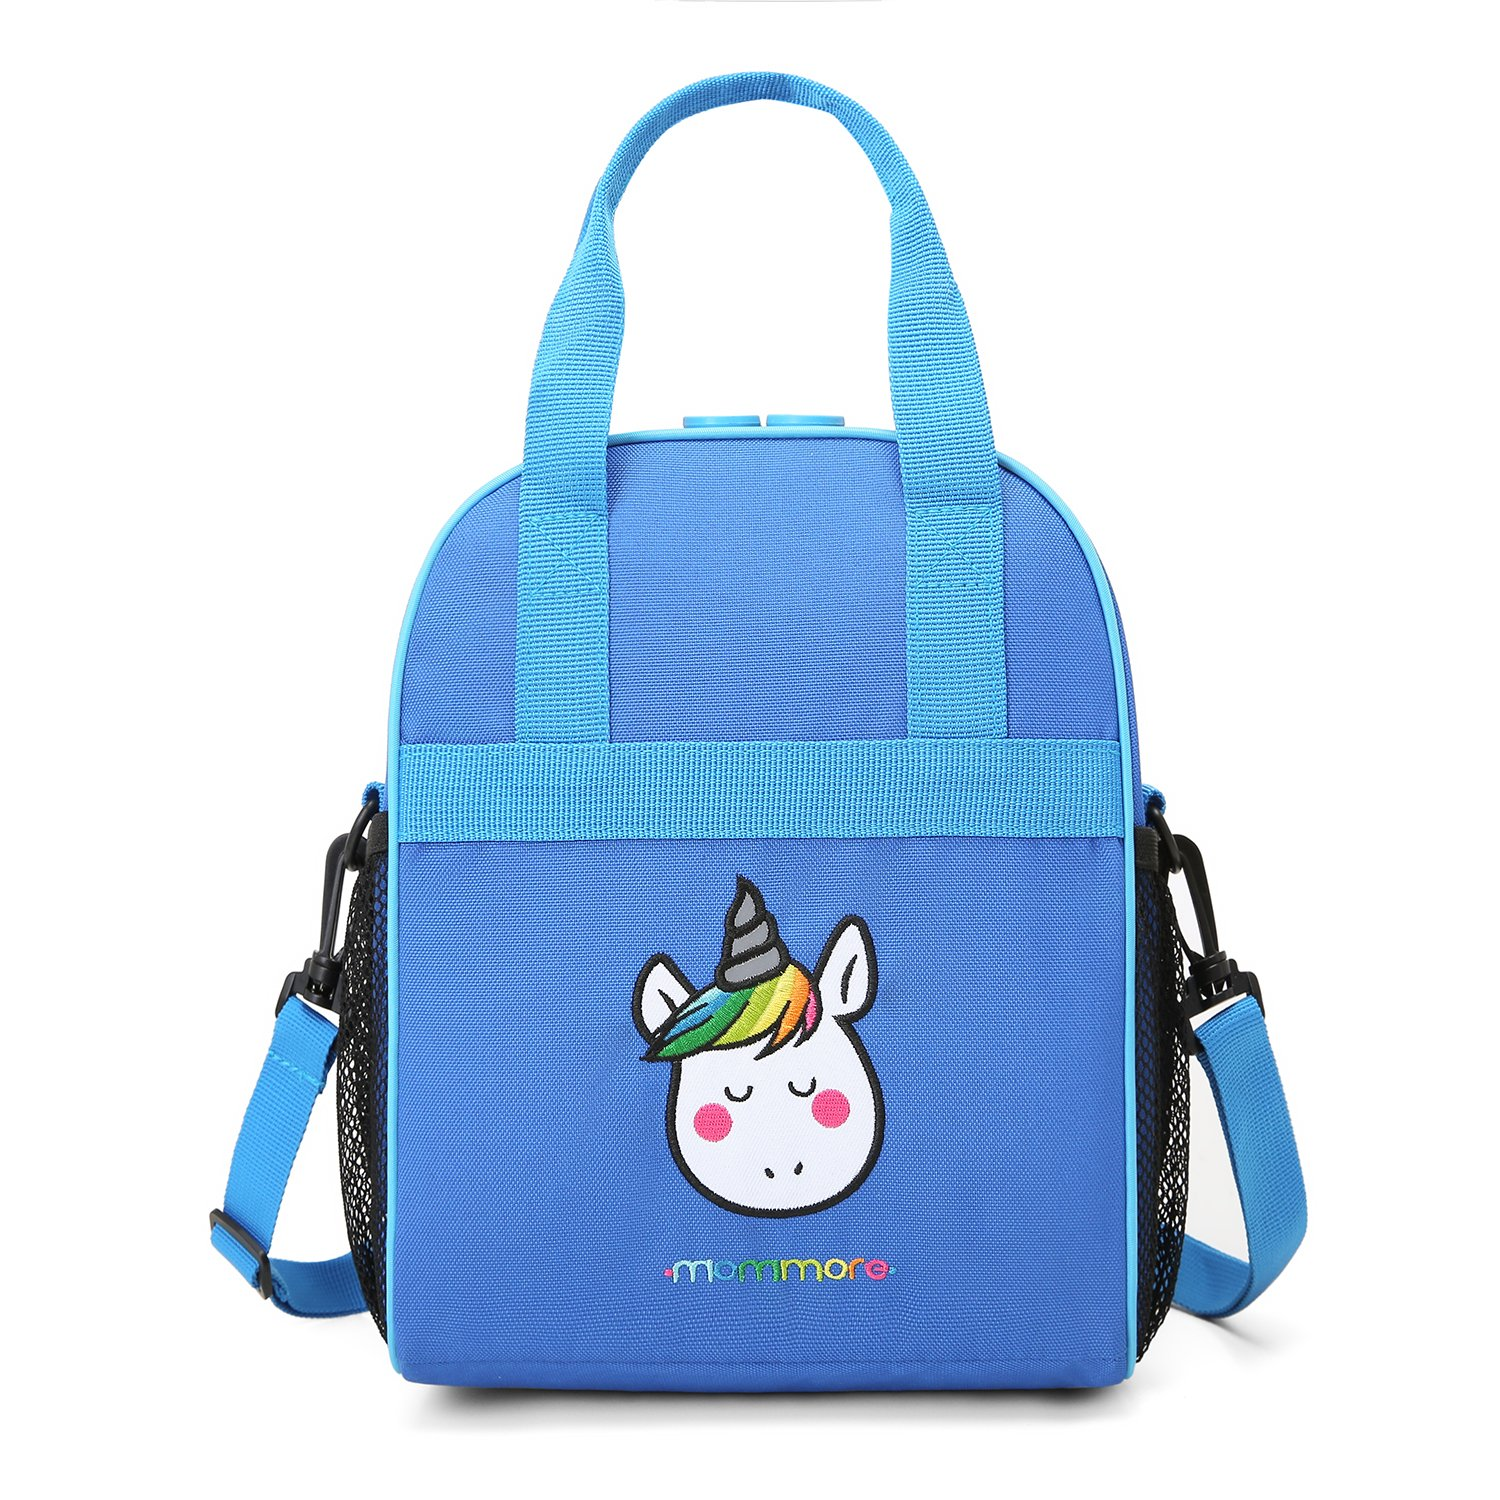 mommore Portable Unicorn Lunch Bag for Kids Insulated Lunch Tote Bag, Blue